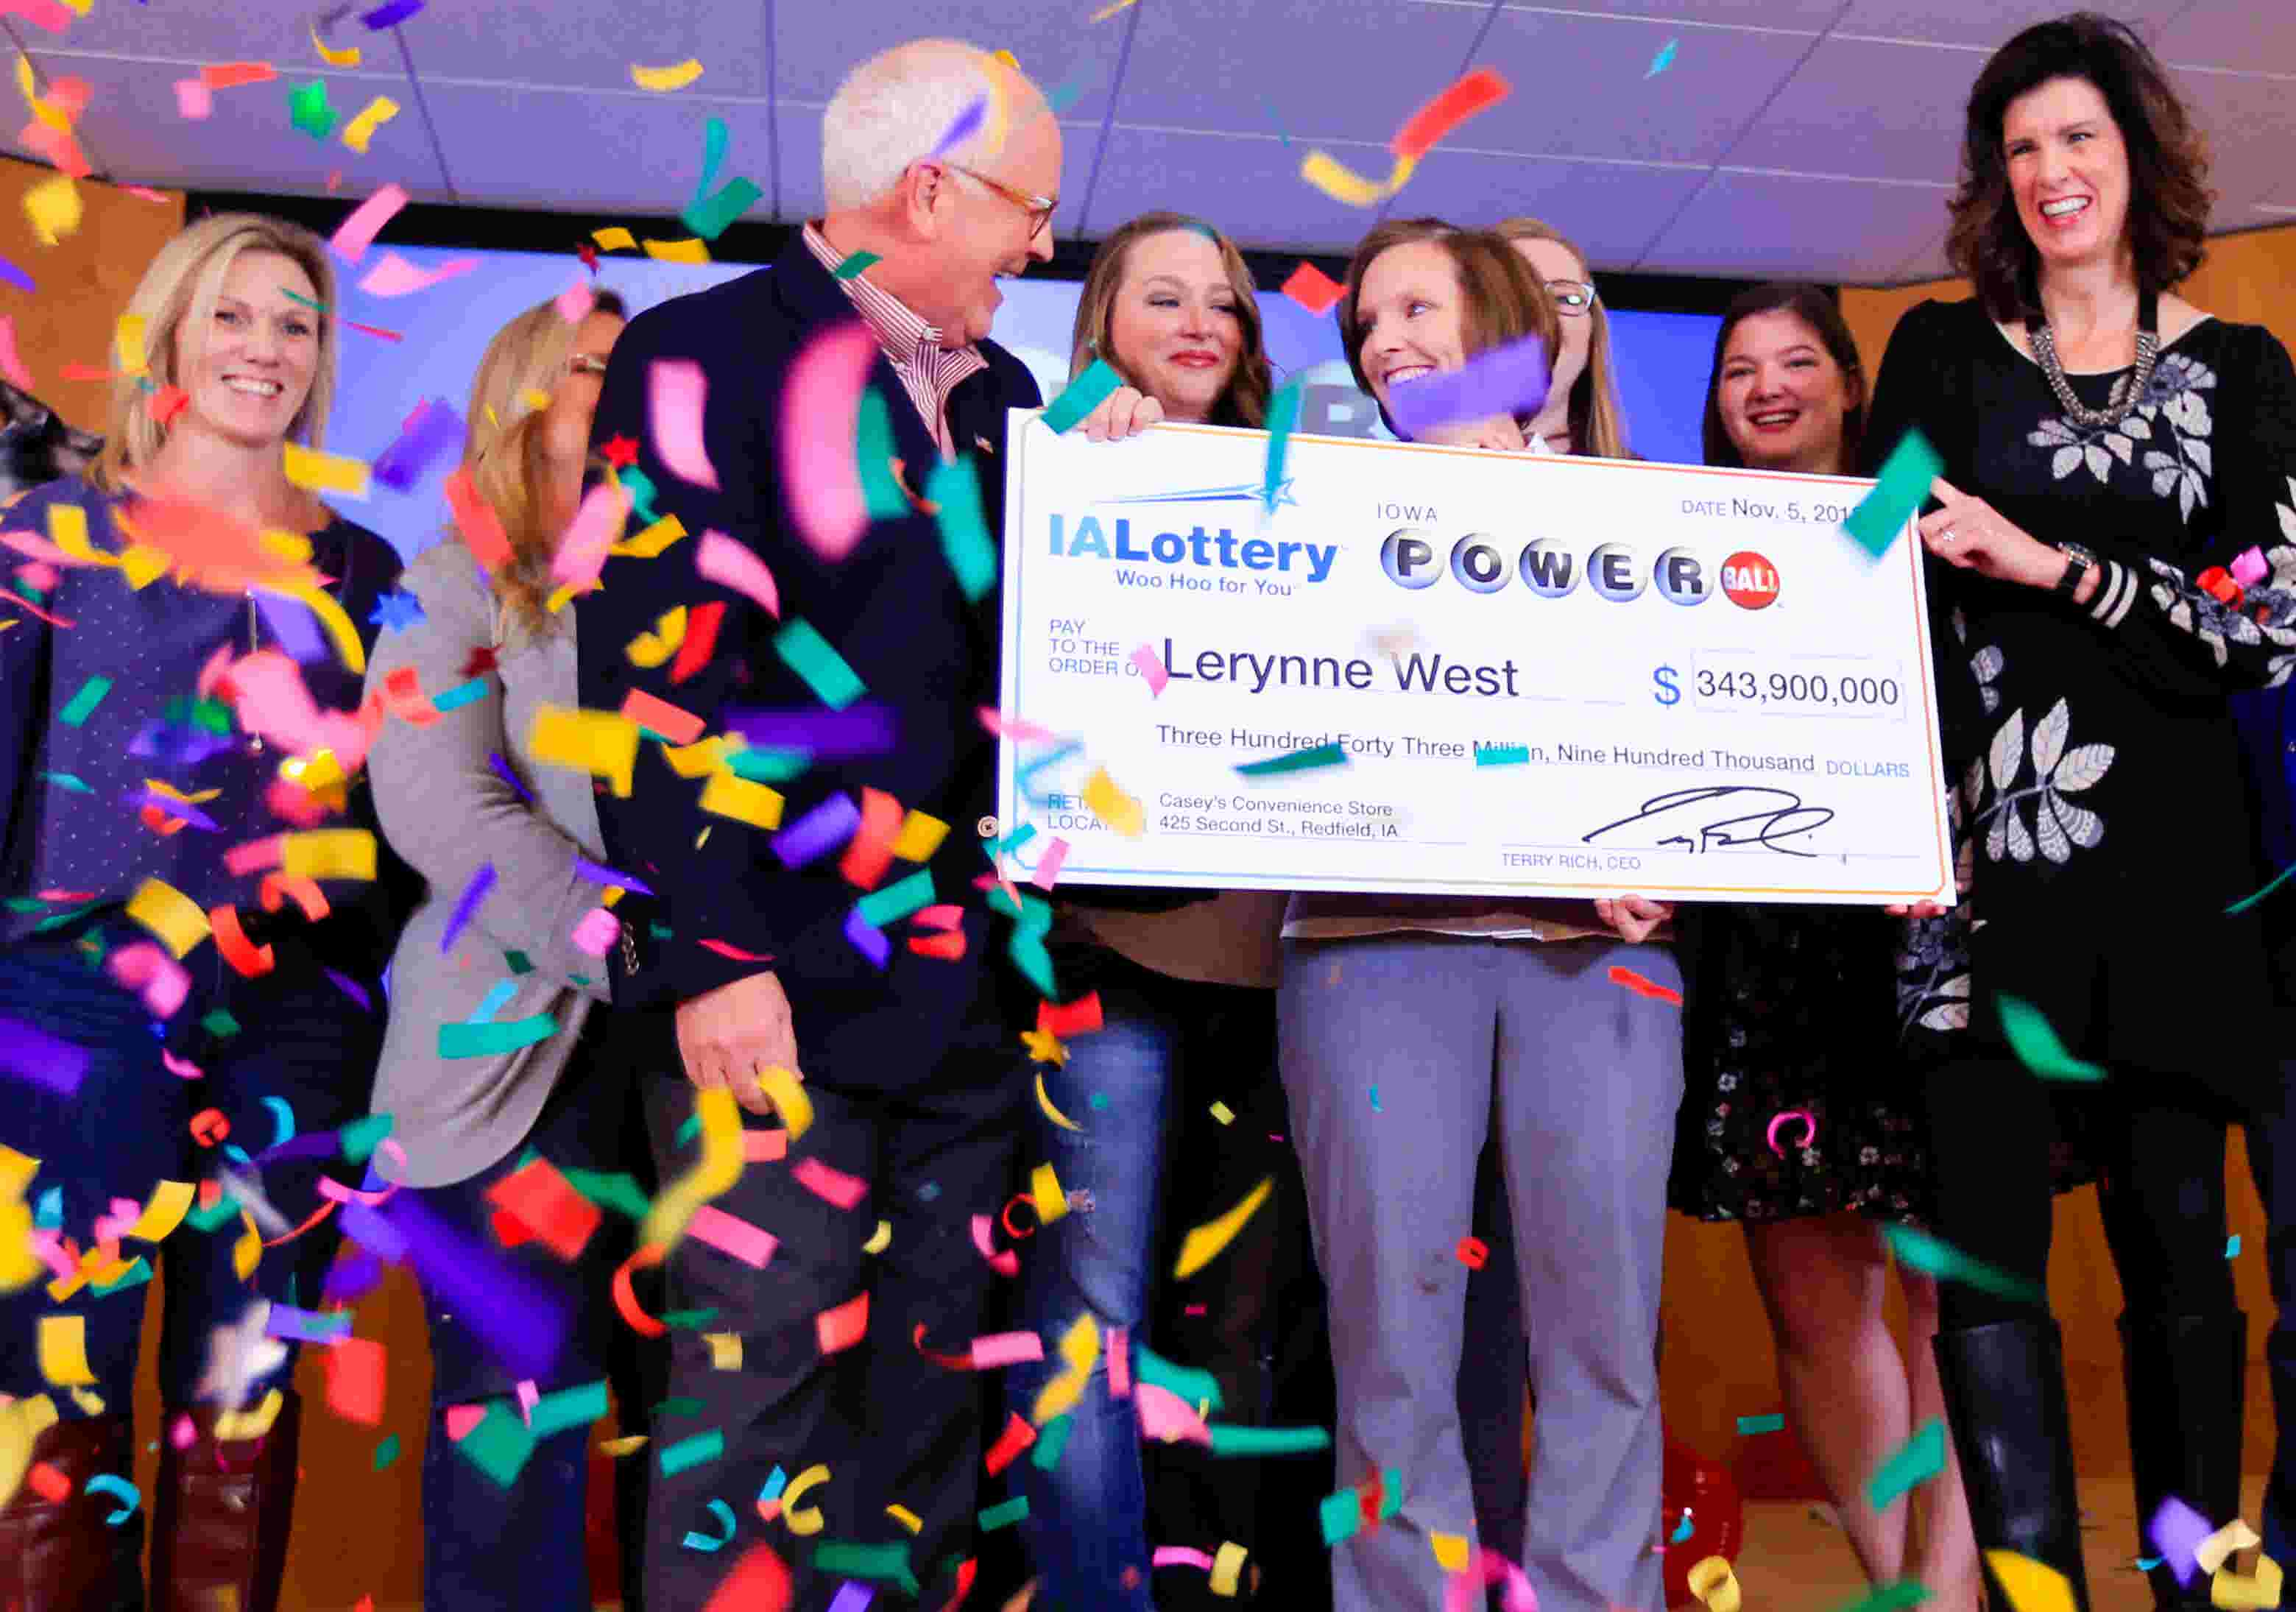 'I have been extremely blessed' Iowa woman wins $343 9 Million Powerball